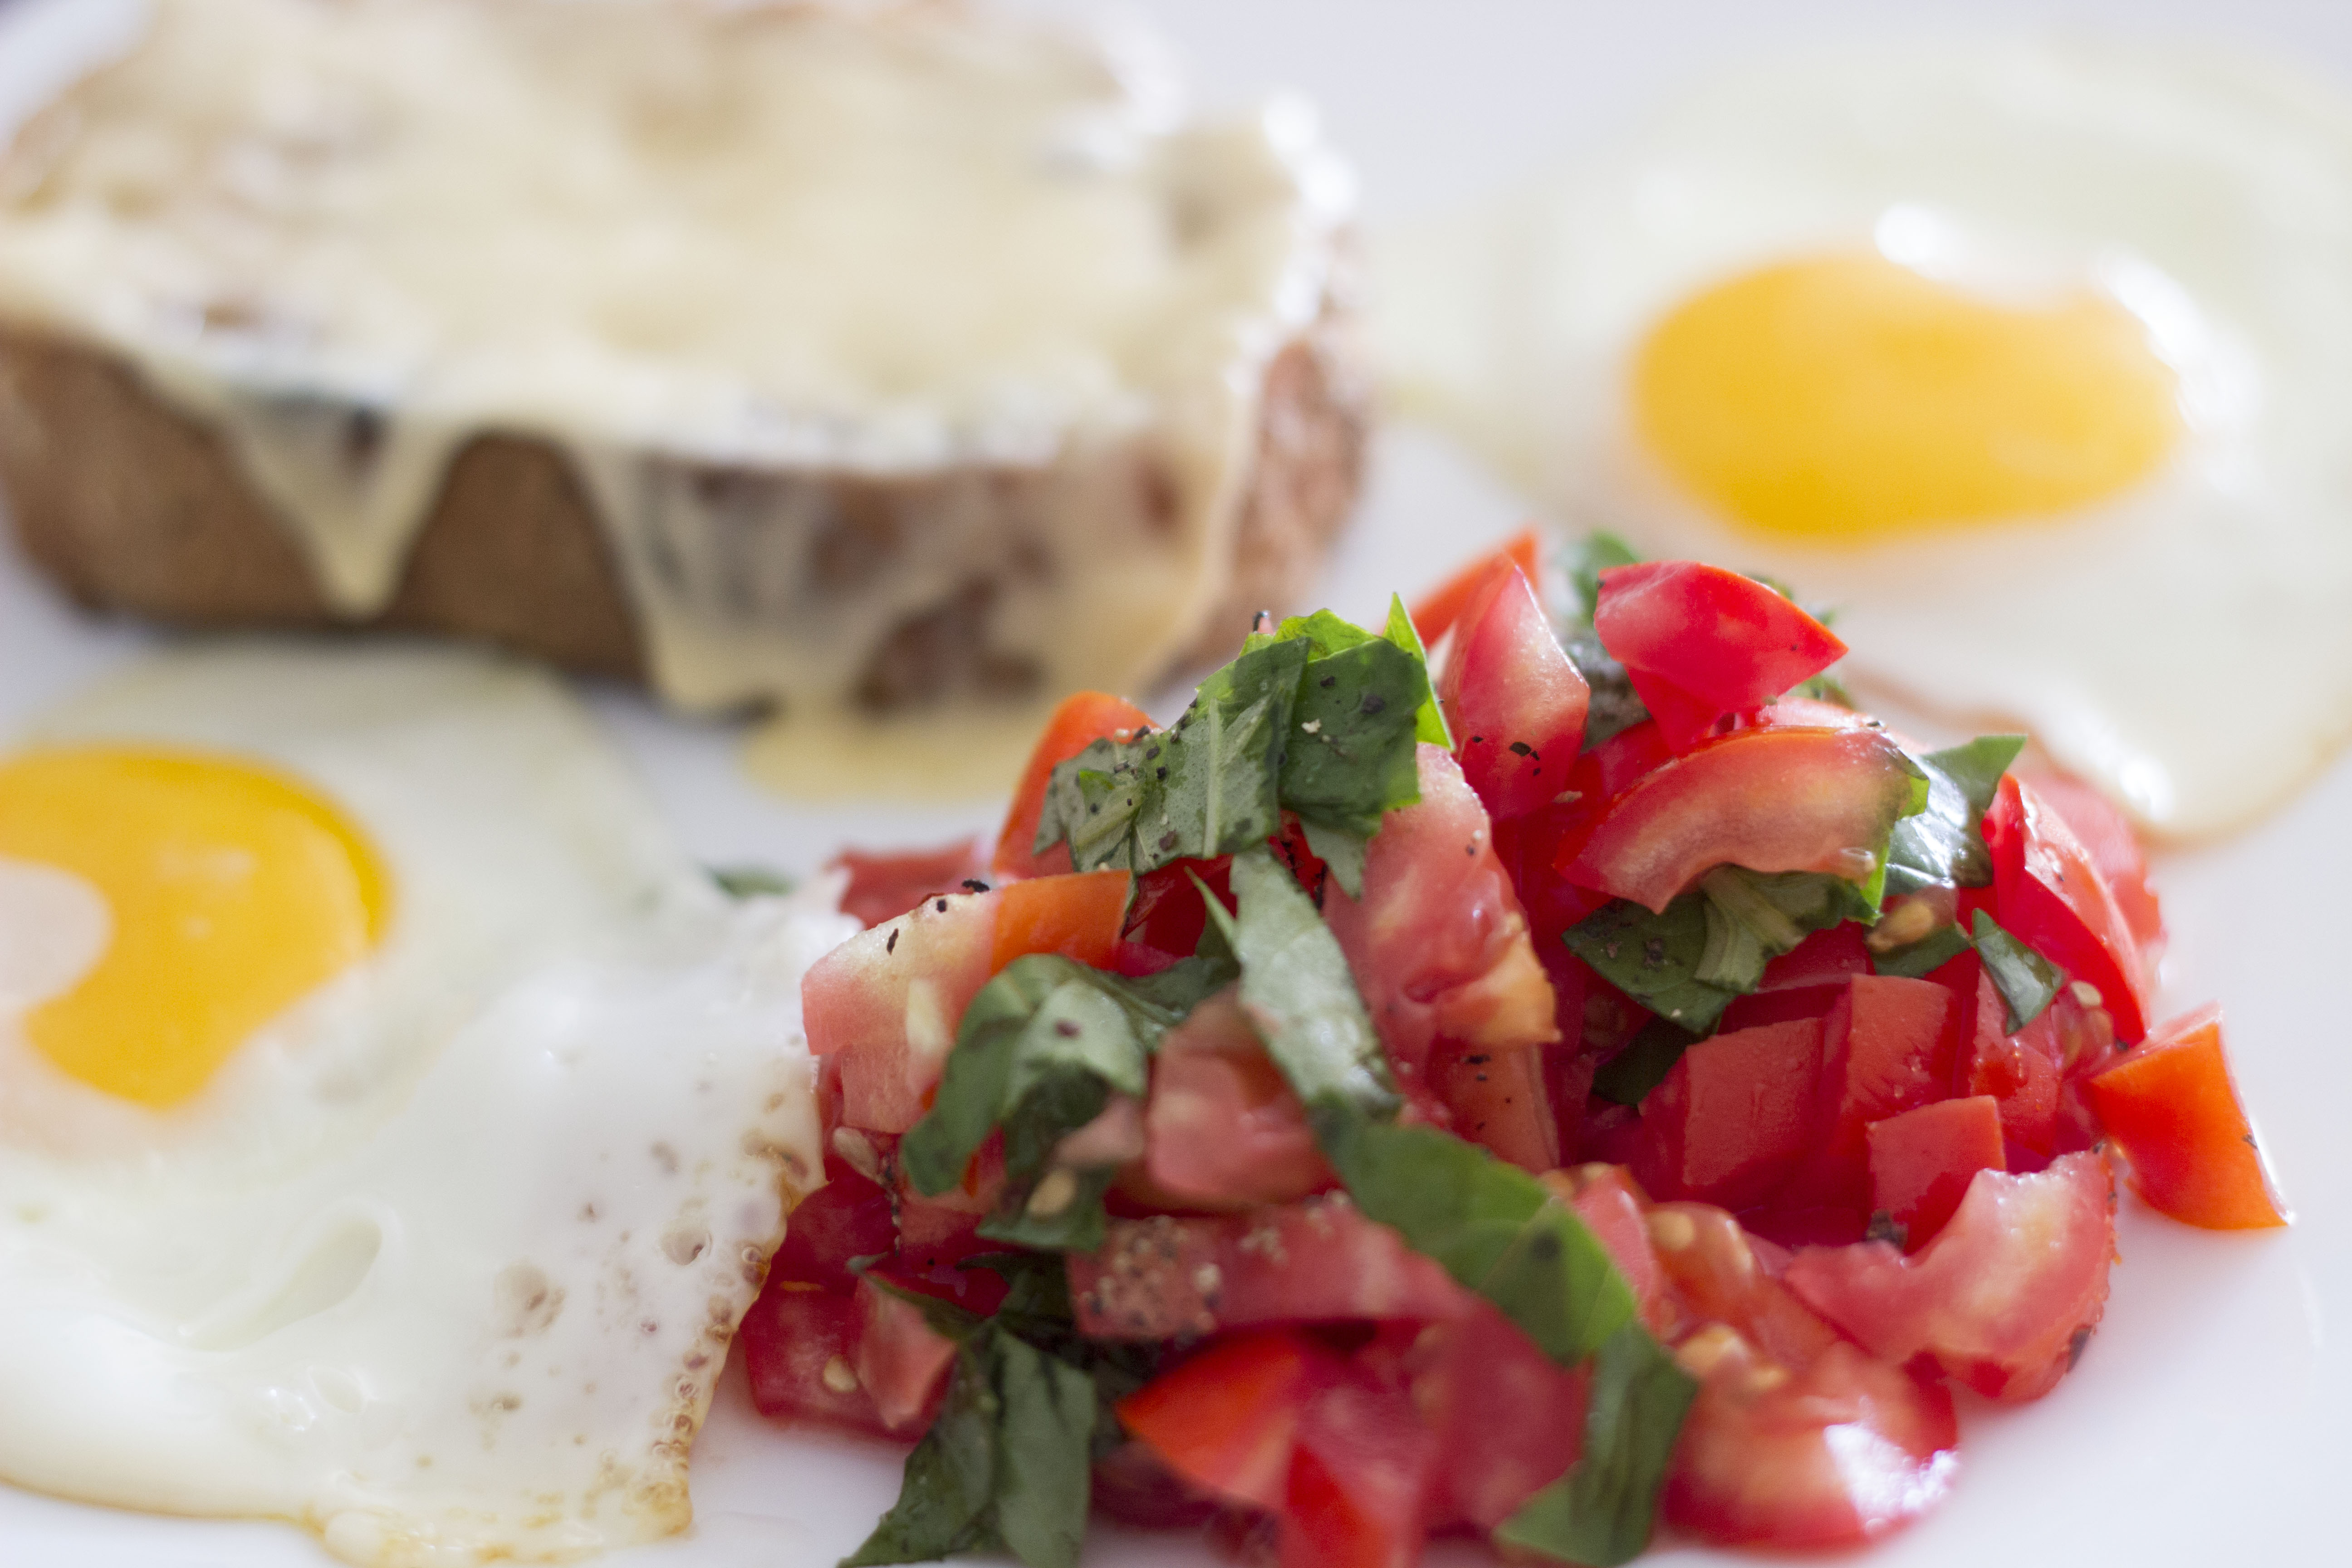 tomatoes, egg, toast